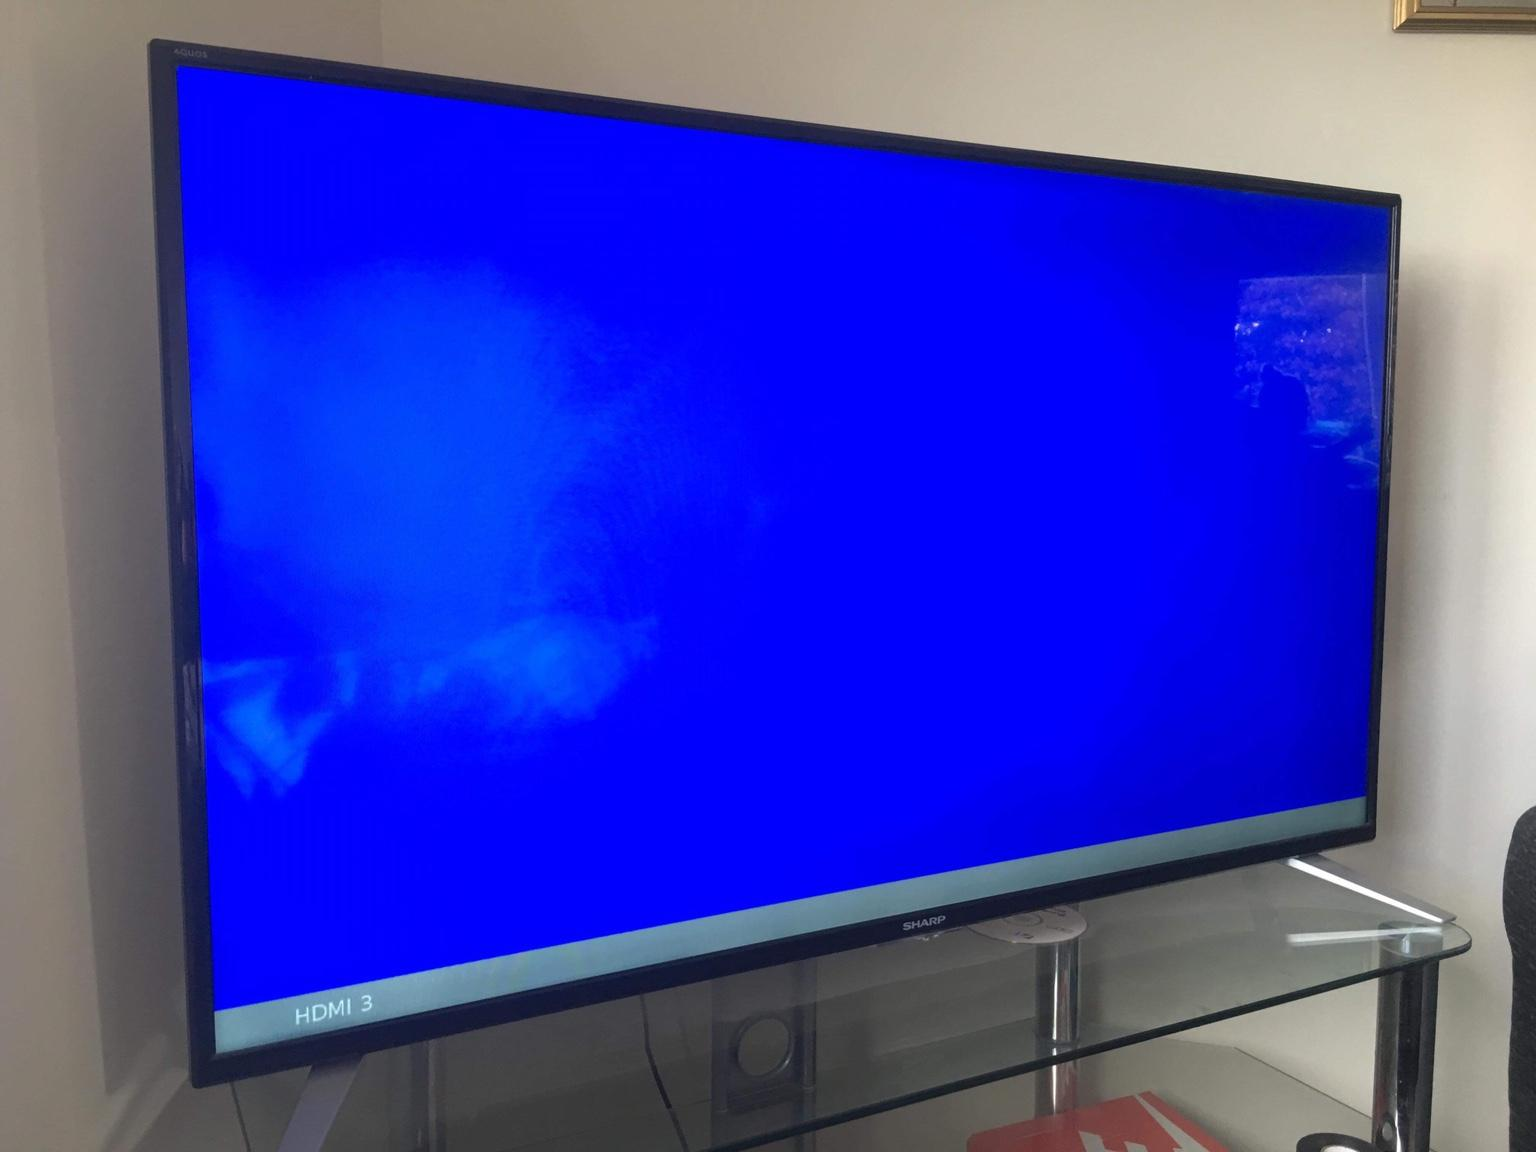 Nieuw Sharp Aquos 52 inch tv in DE55 Bolsover for £150.00 for sale - Shpock YH-64